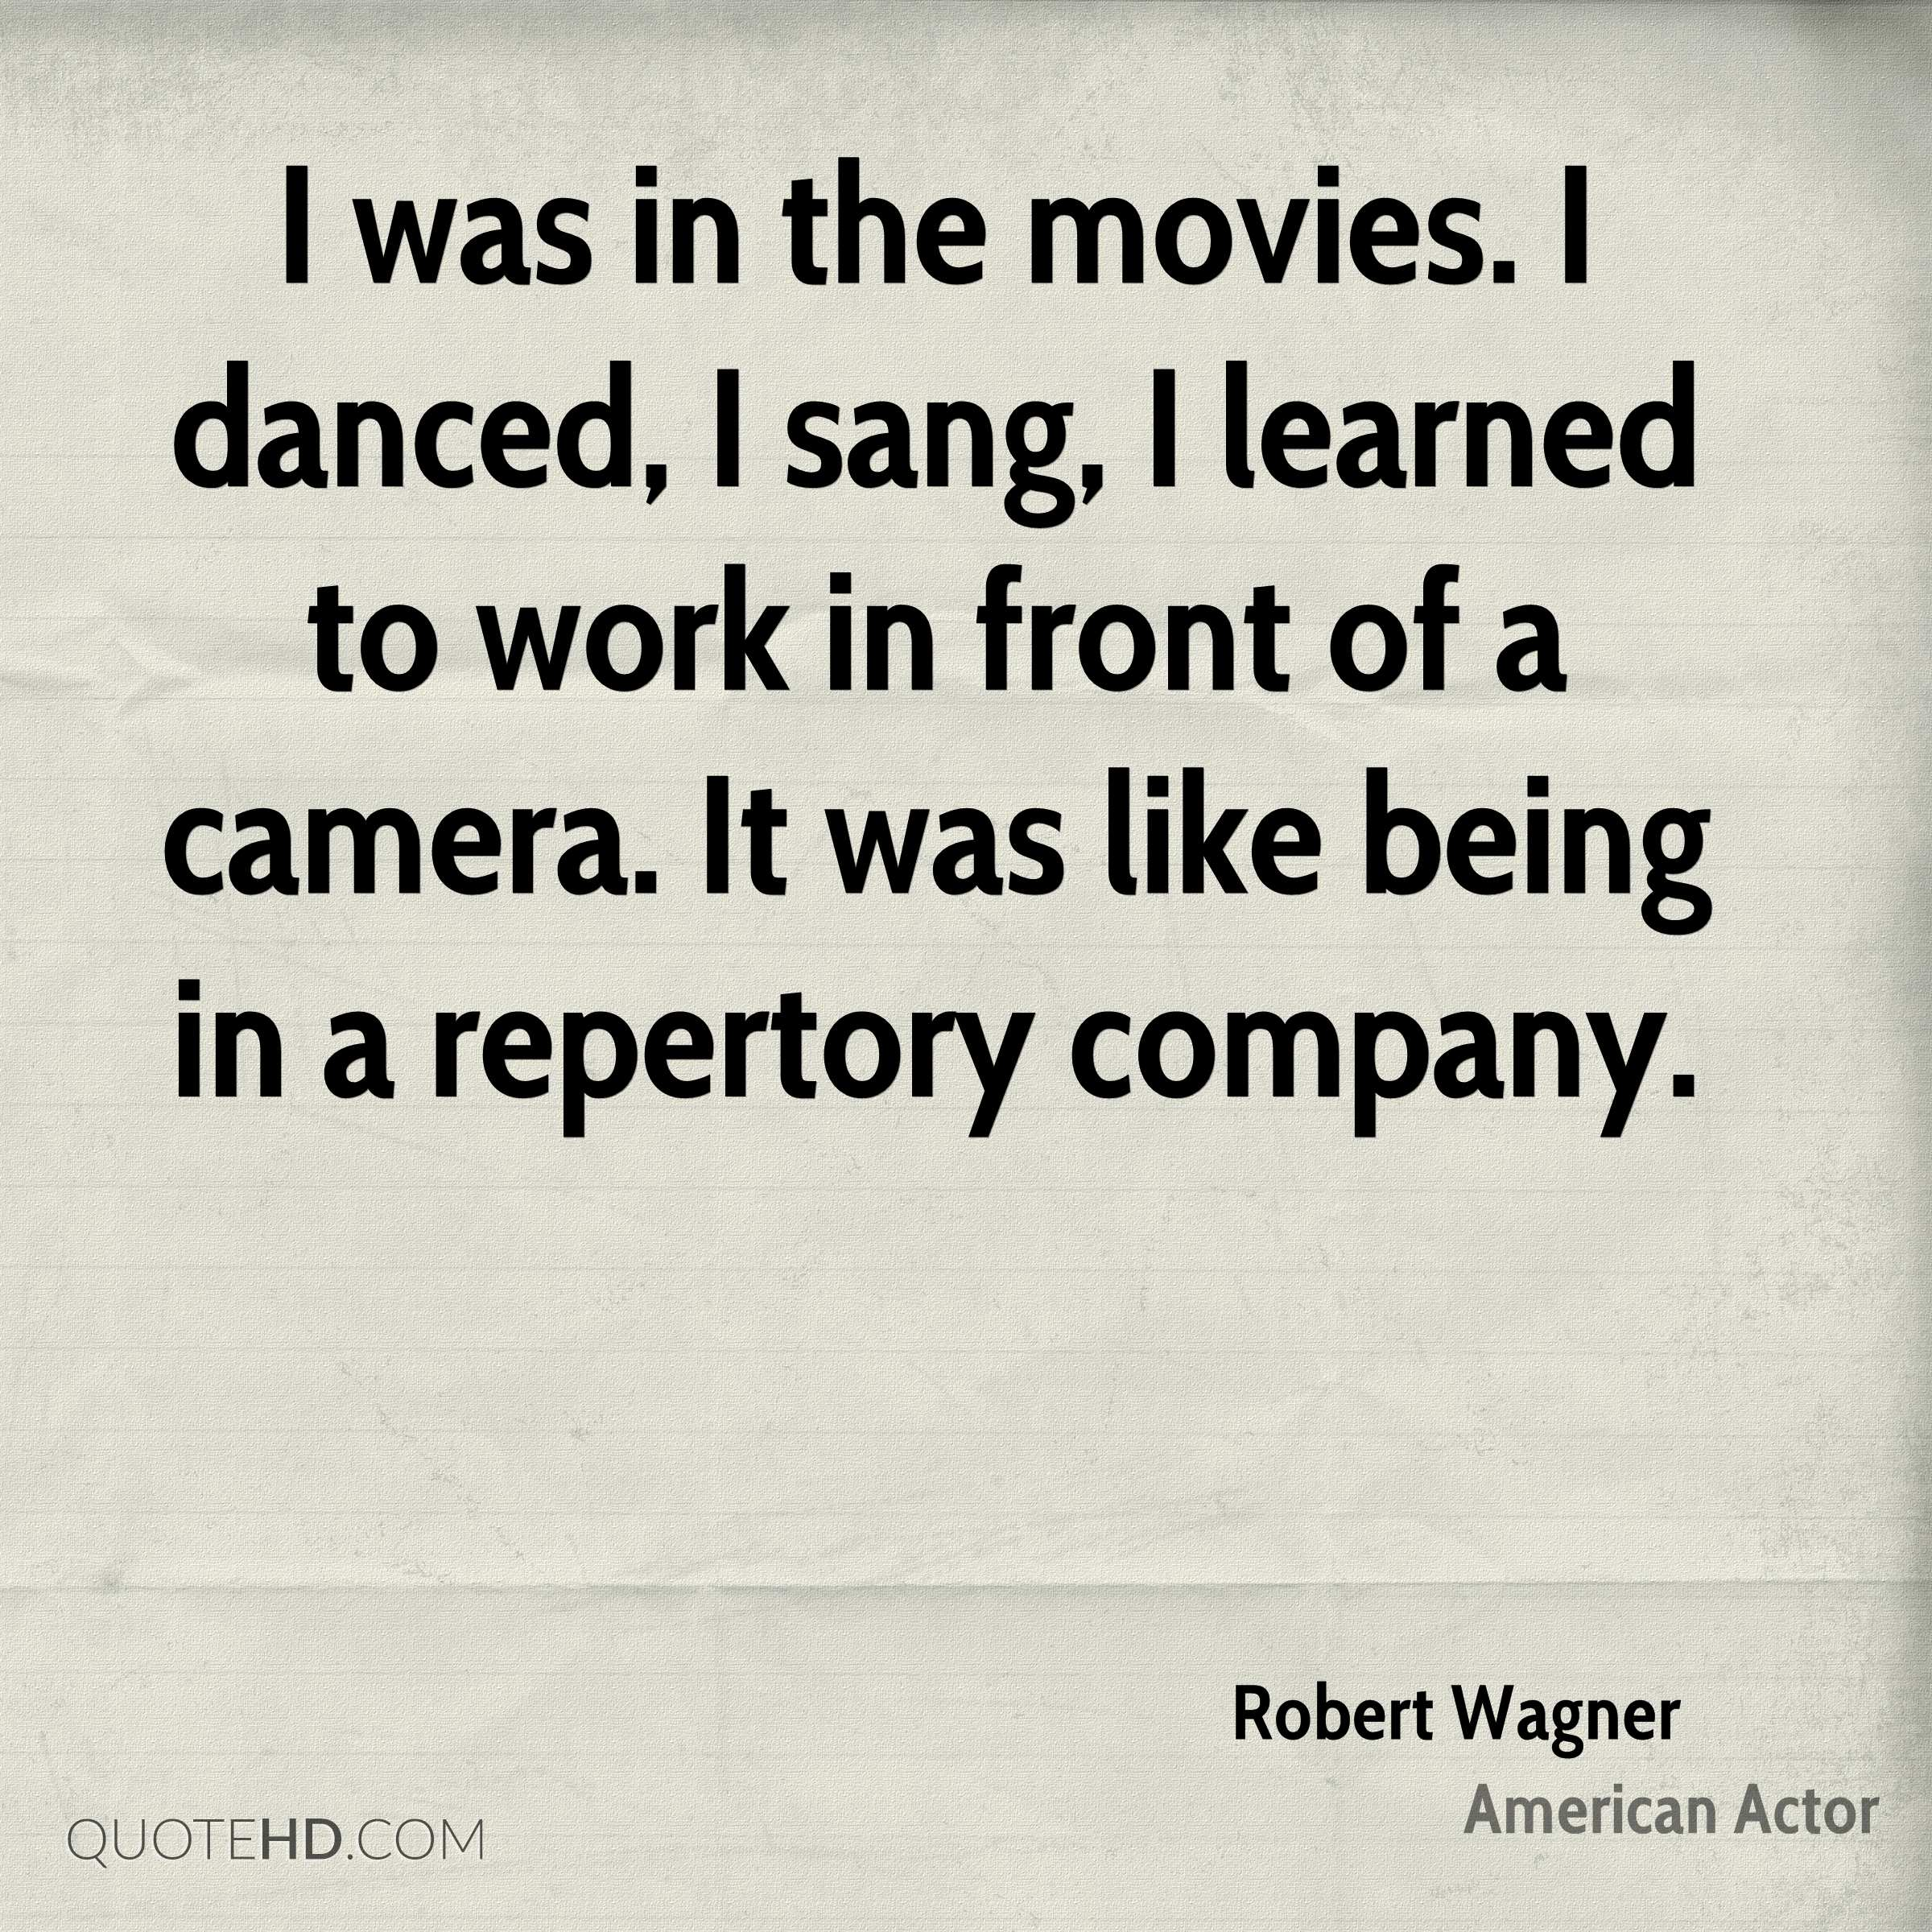 Terrific Robert Wagner Actor Quote I Was Movies I Danced I Sang I Camera Company Norwood Ma Camera Company Used dpreview The Camera Company